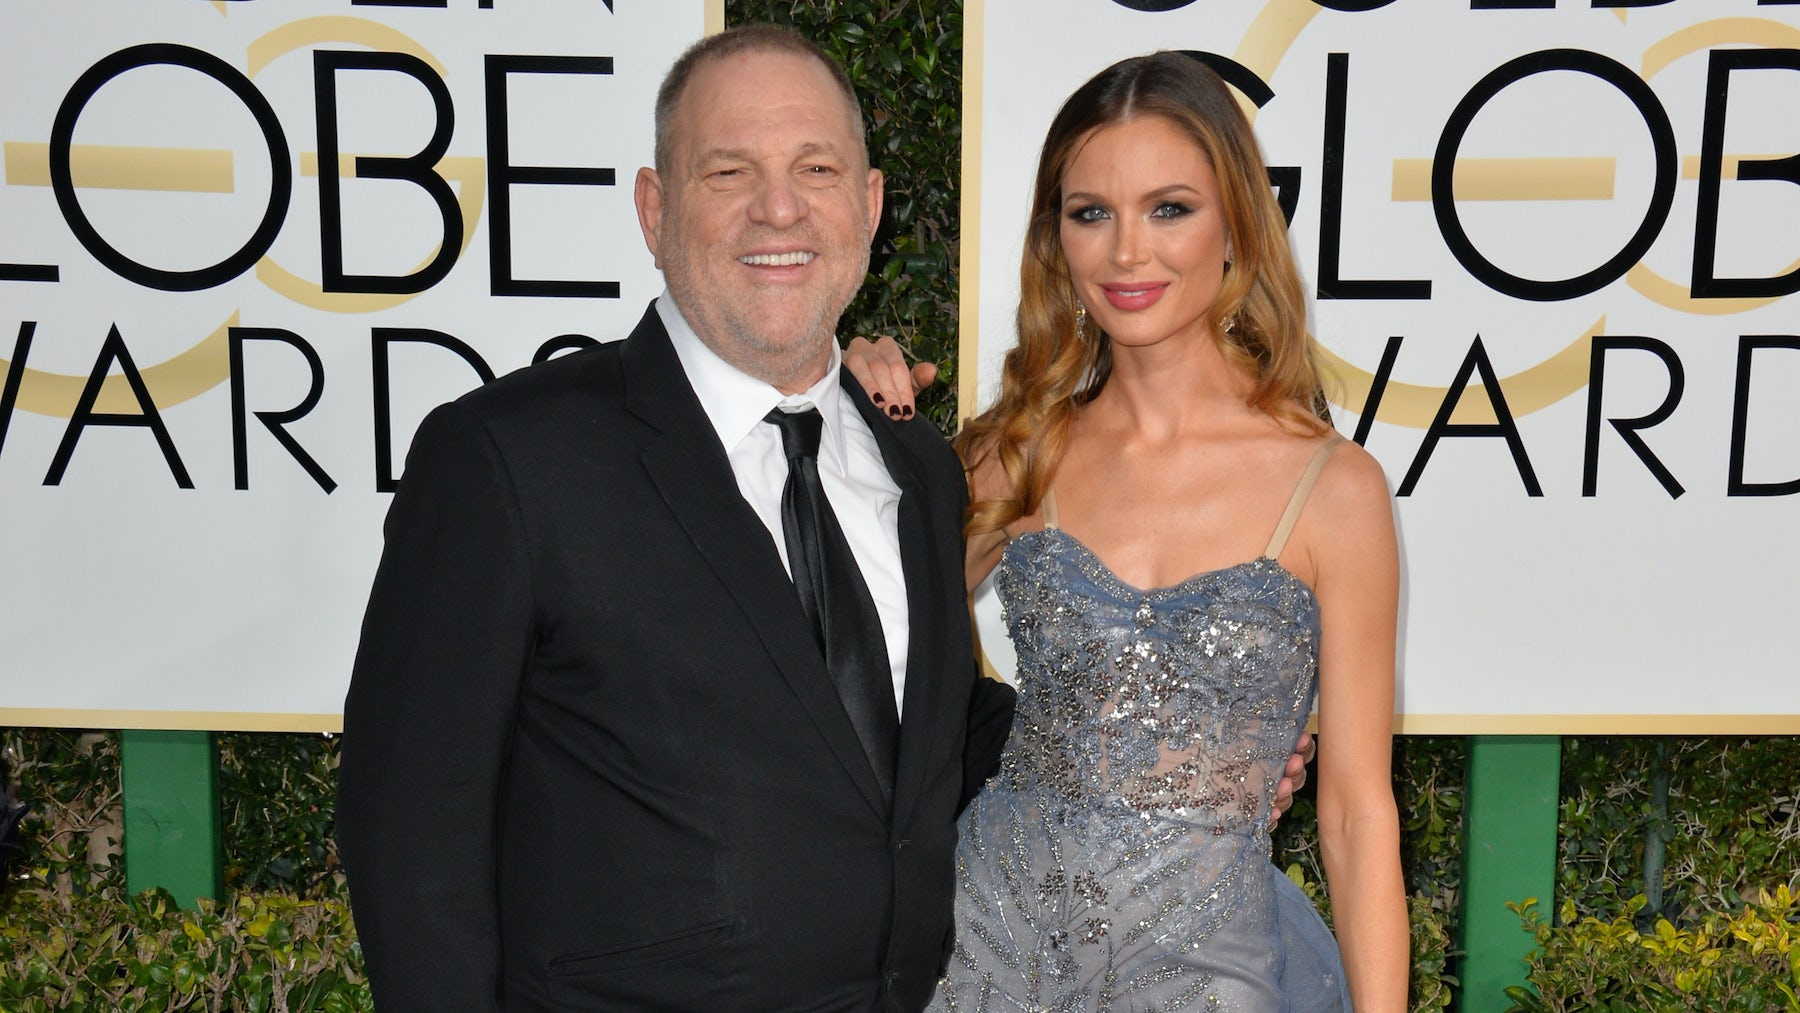 Harvey Weinstein and Georgina Chapman at this year's Golden Globe Awards | Source: Shutterstock